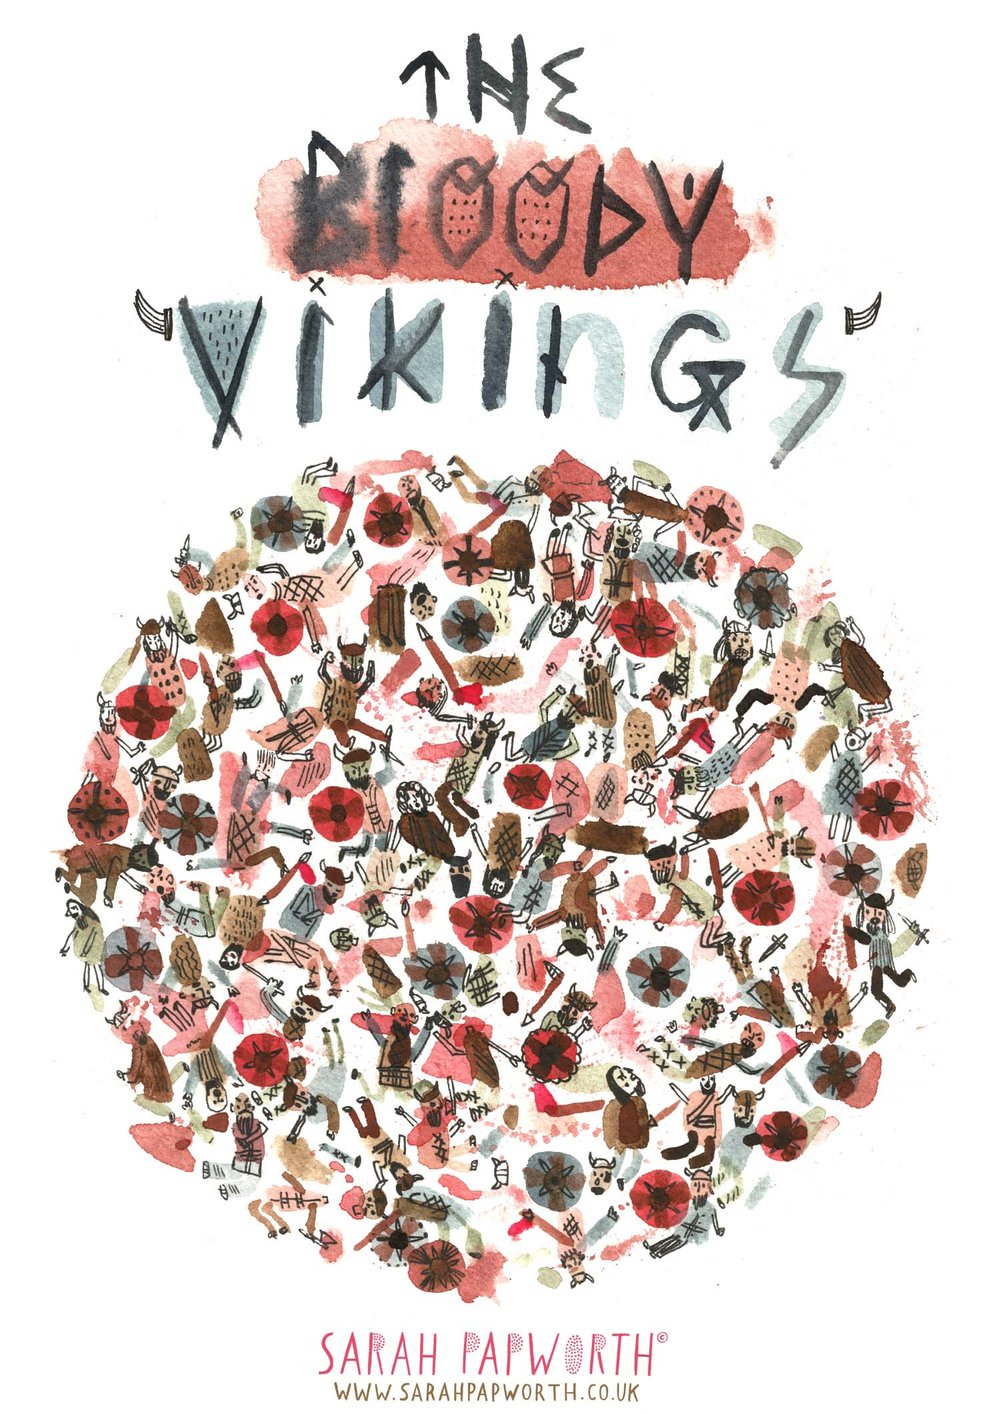 bloody vikings watercolour illustration historical drawings book illustrator sarah papworth.jpg